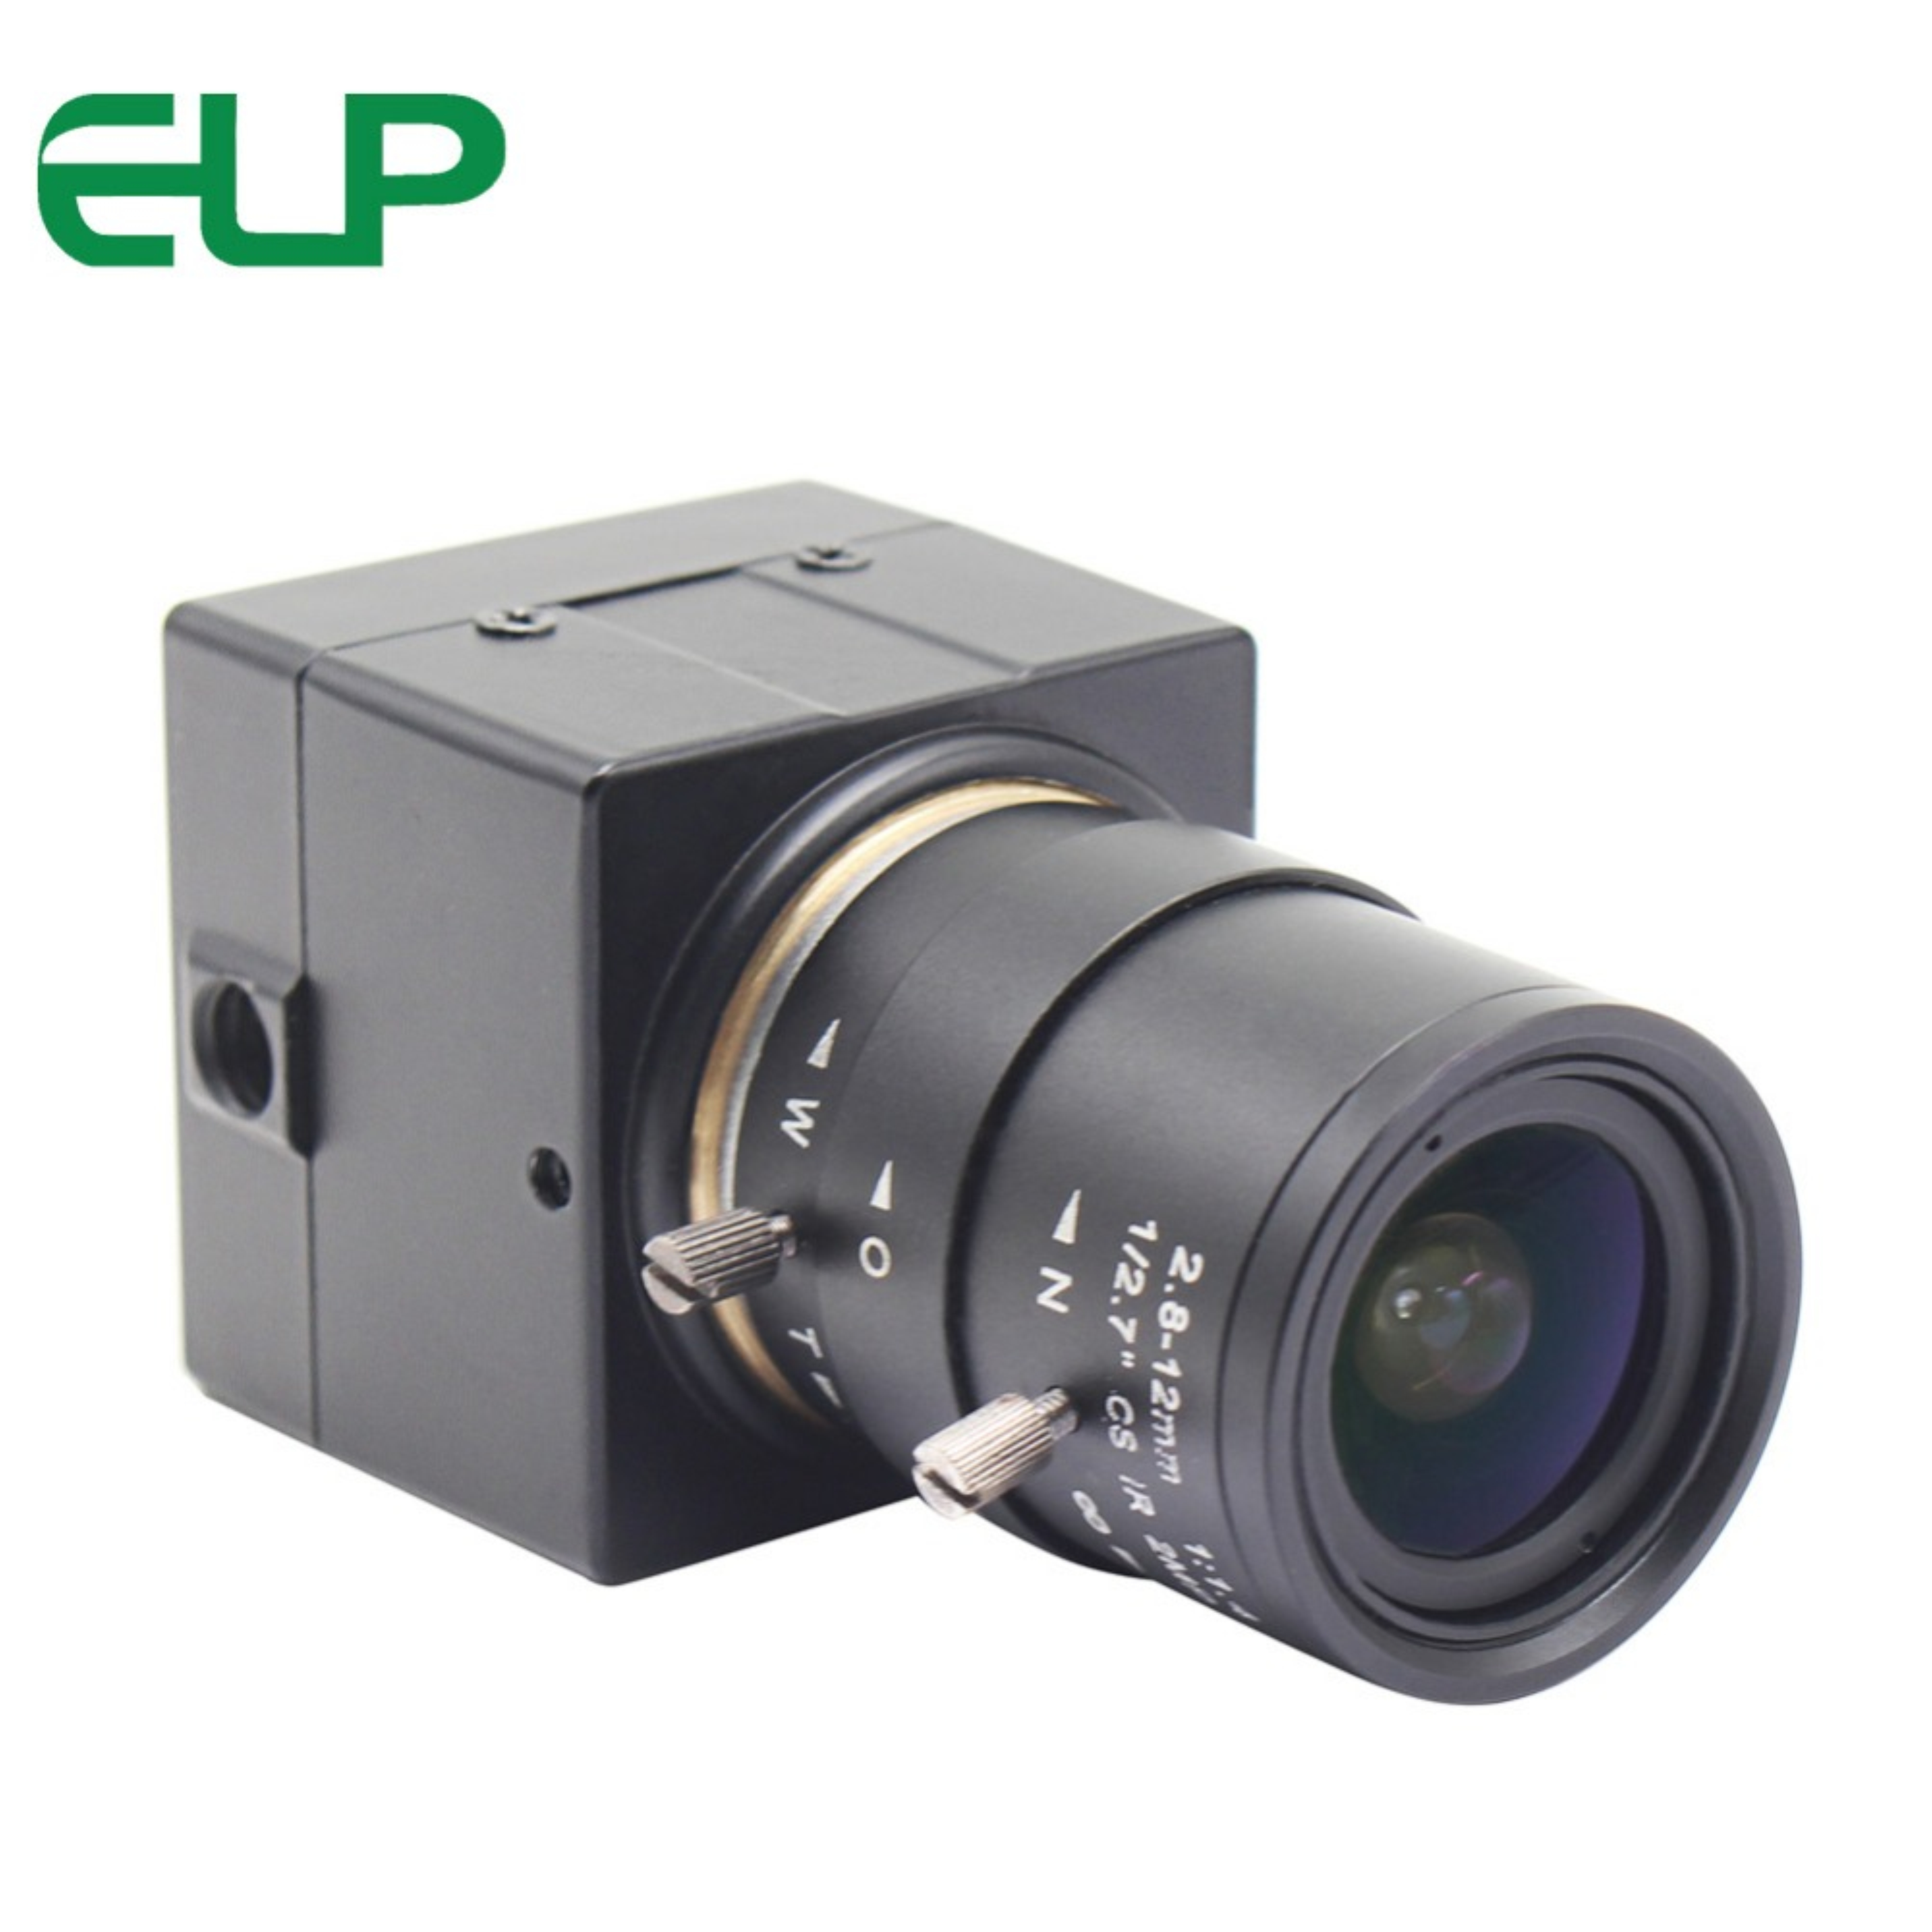 ELP 5mp high resolution USB 2.0 webcam Aptina Color CMOS Full HD USB Camera for 3D printer